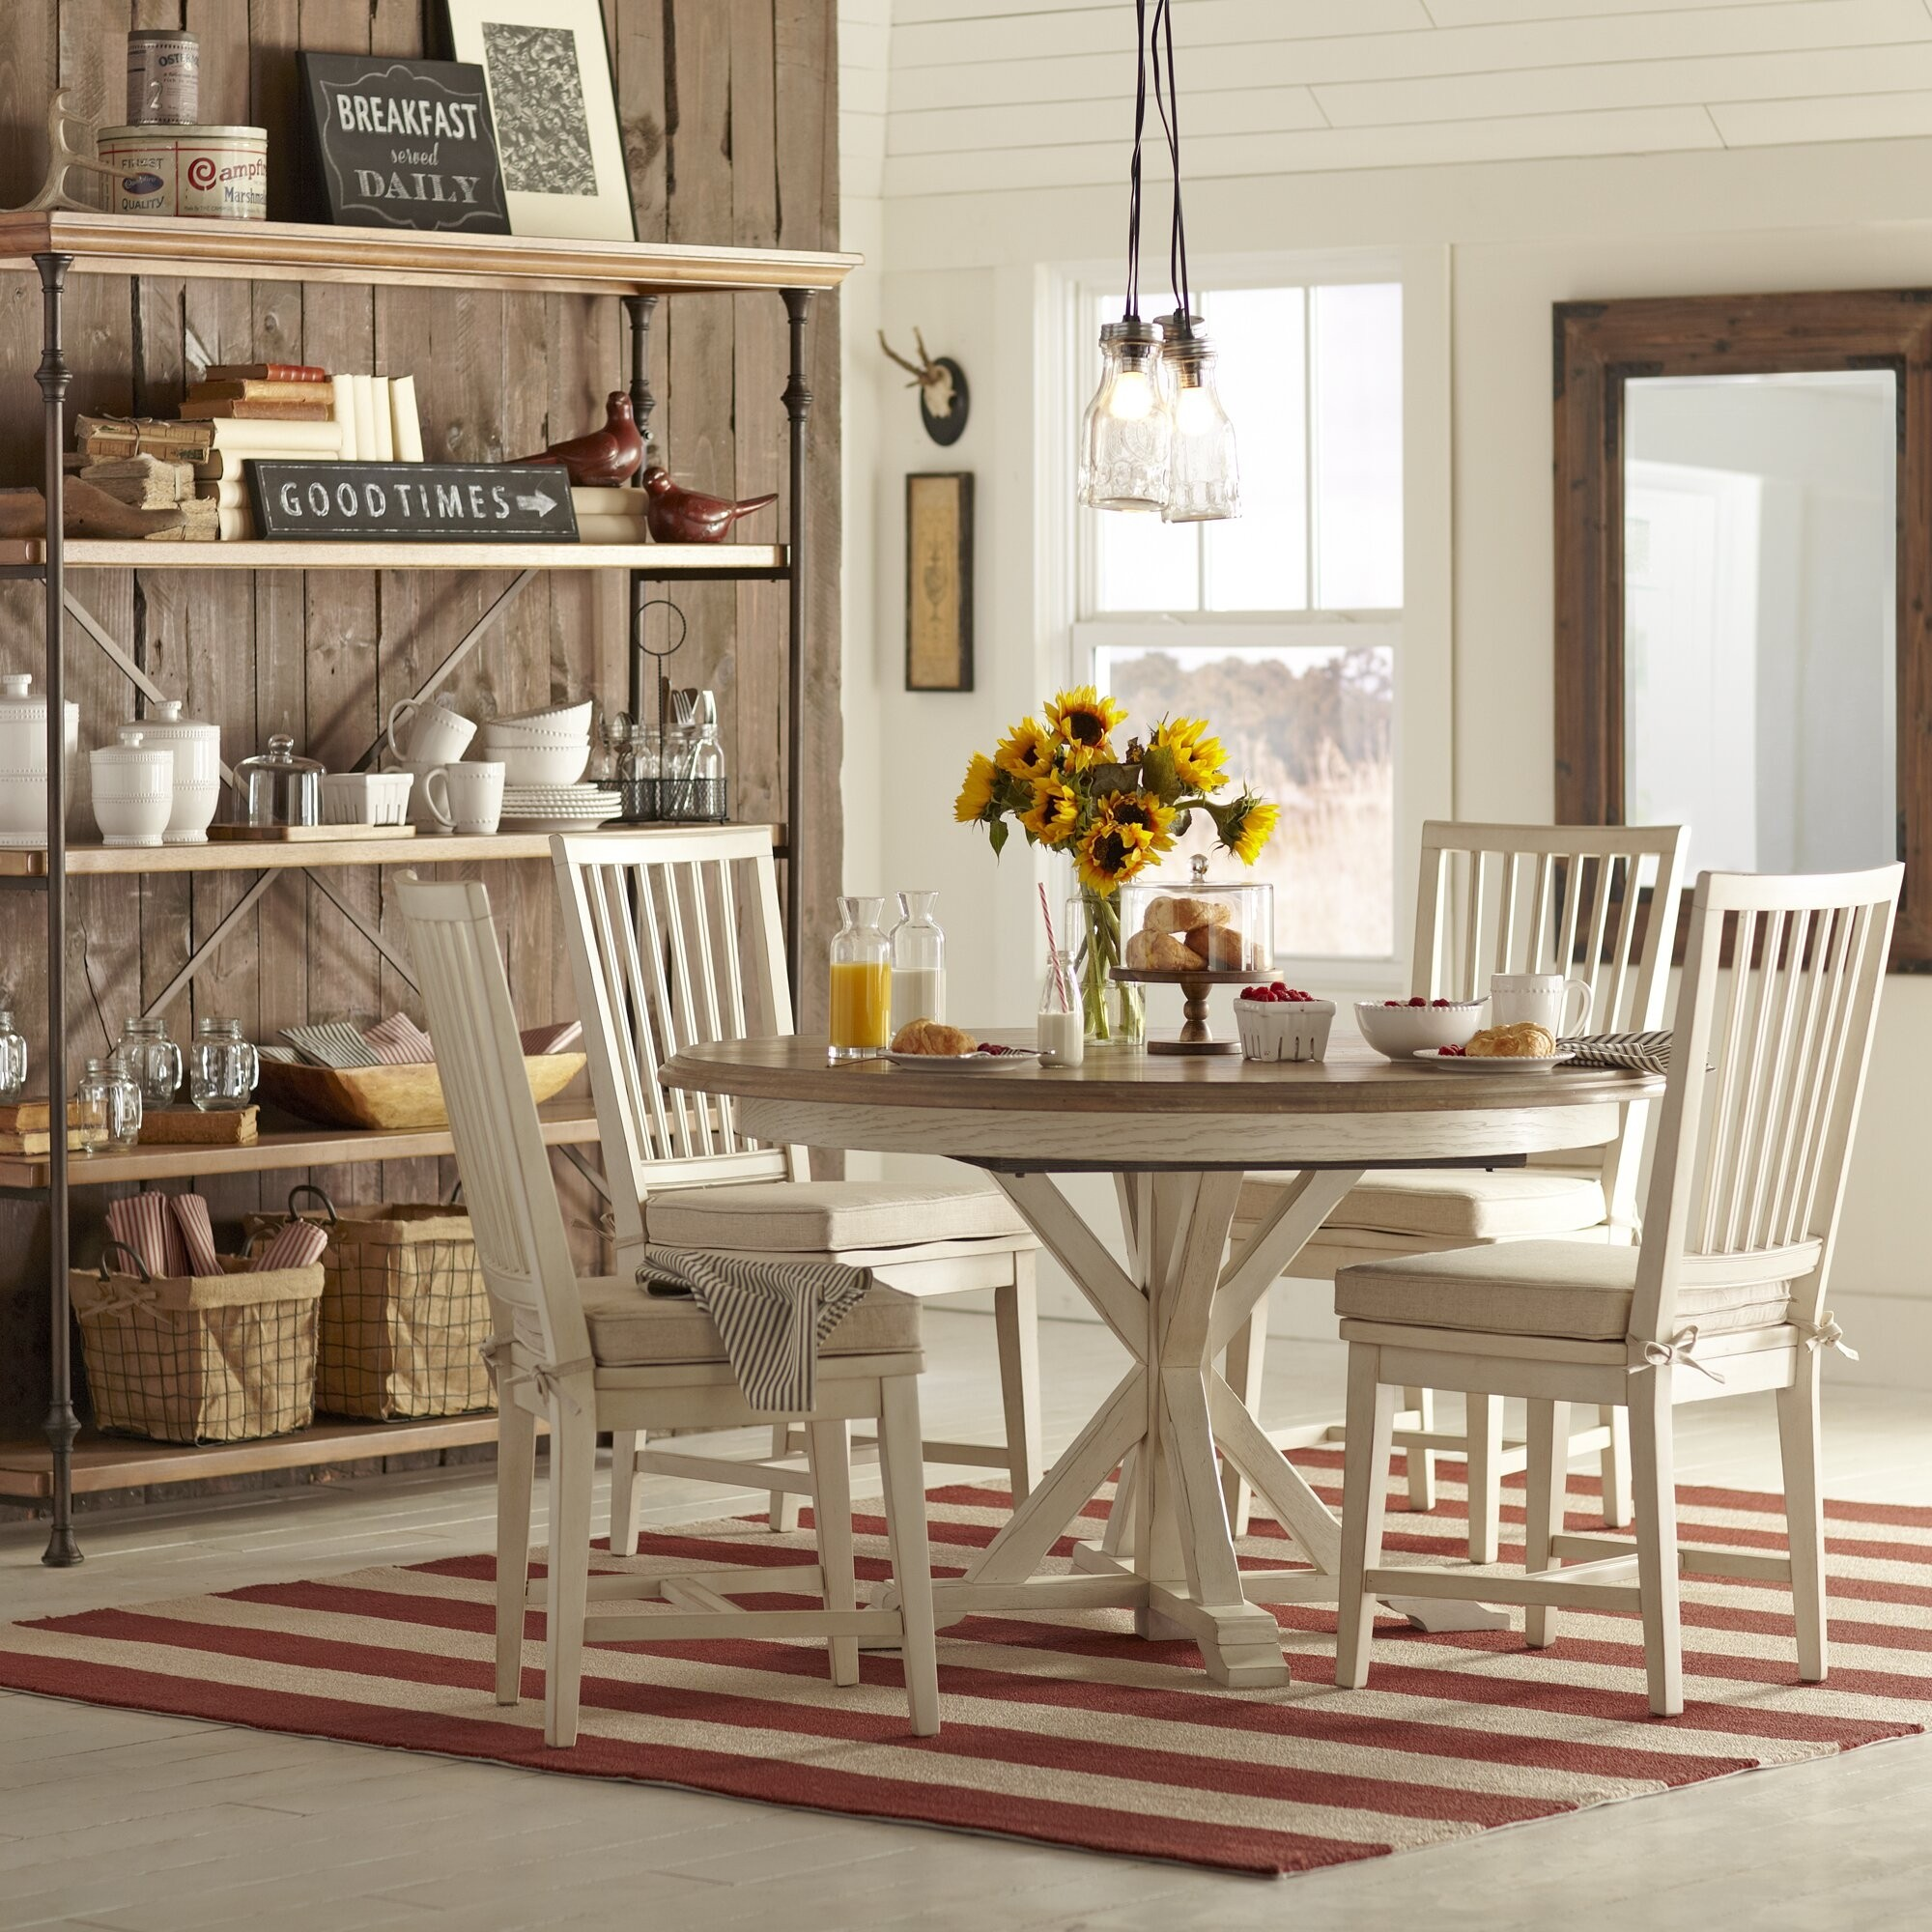 Merveilleux Country Kitchen Rustic Cabin Oak Wood Cottage Dining Table